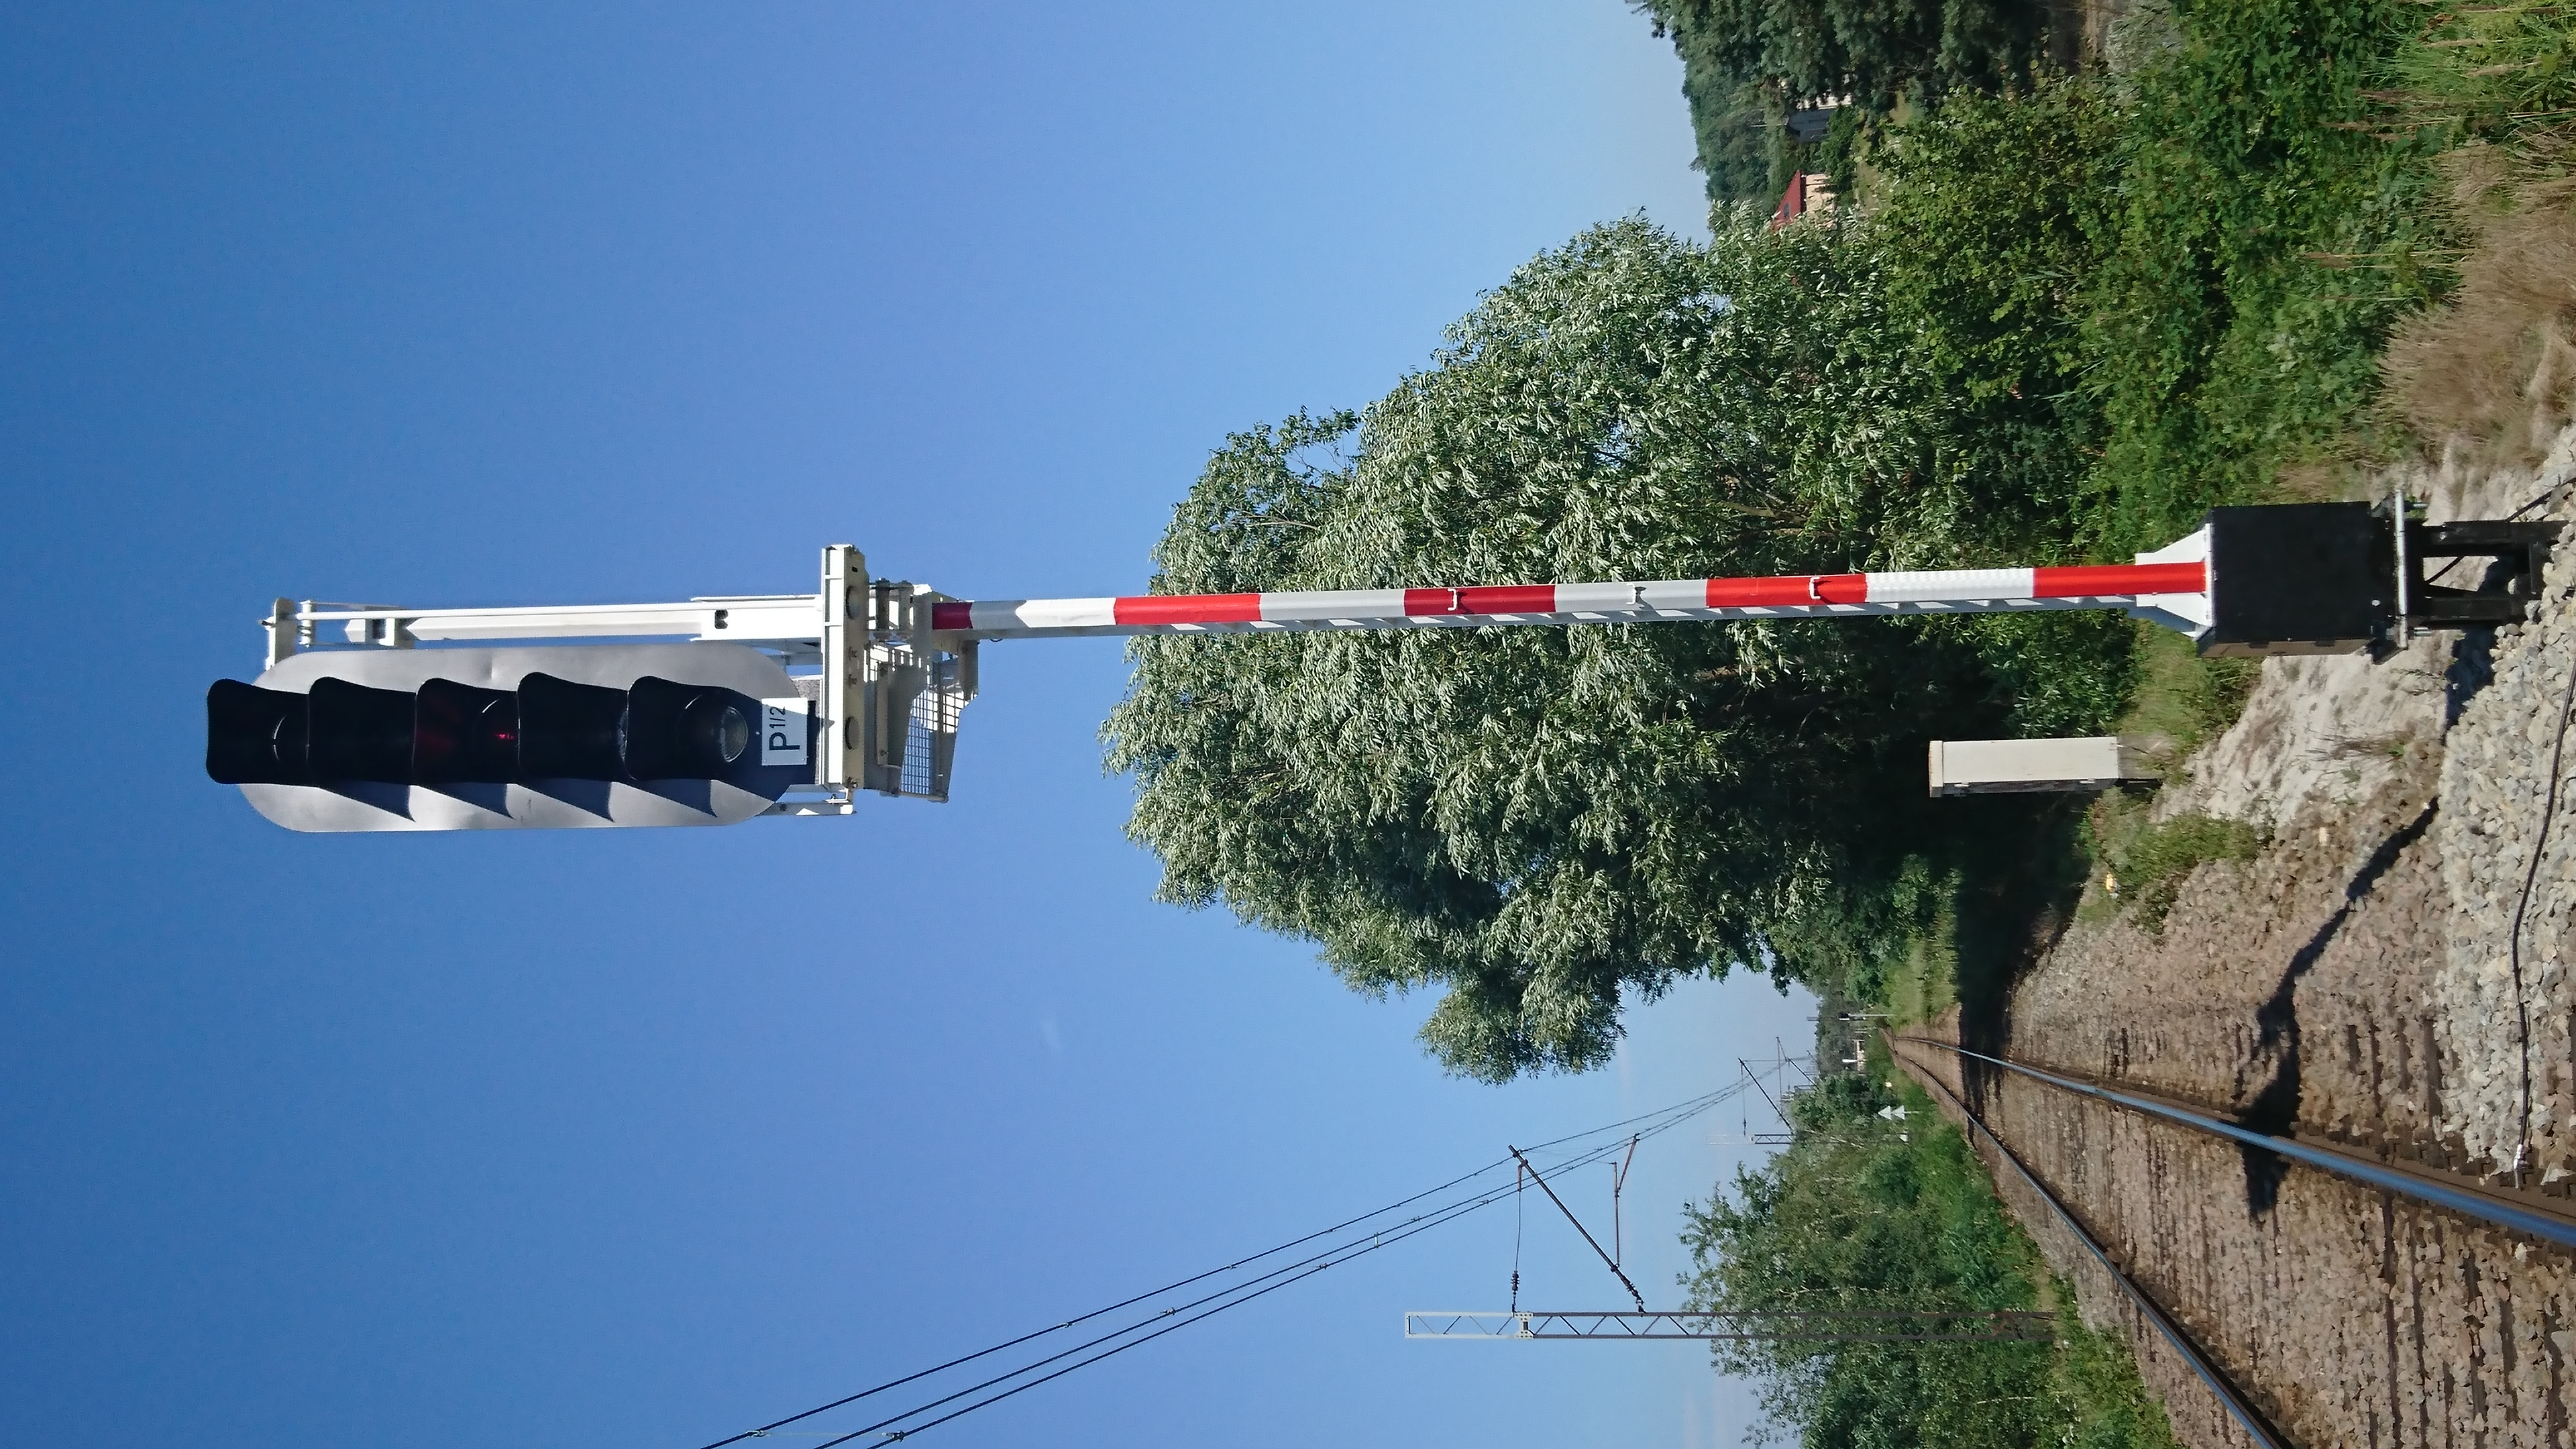 The newest generation railway signal by MONAT installed on the next railway line